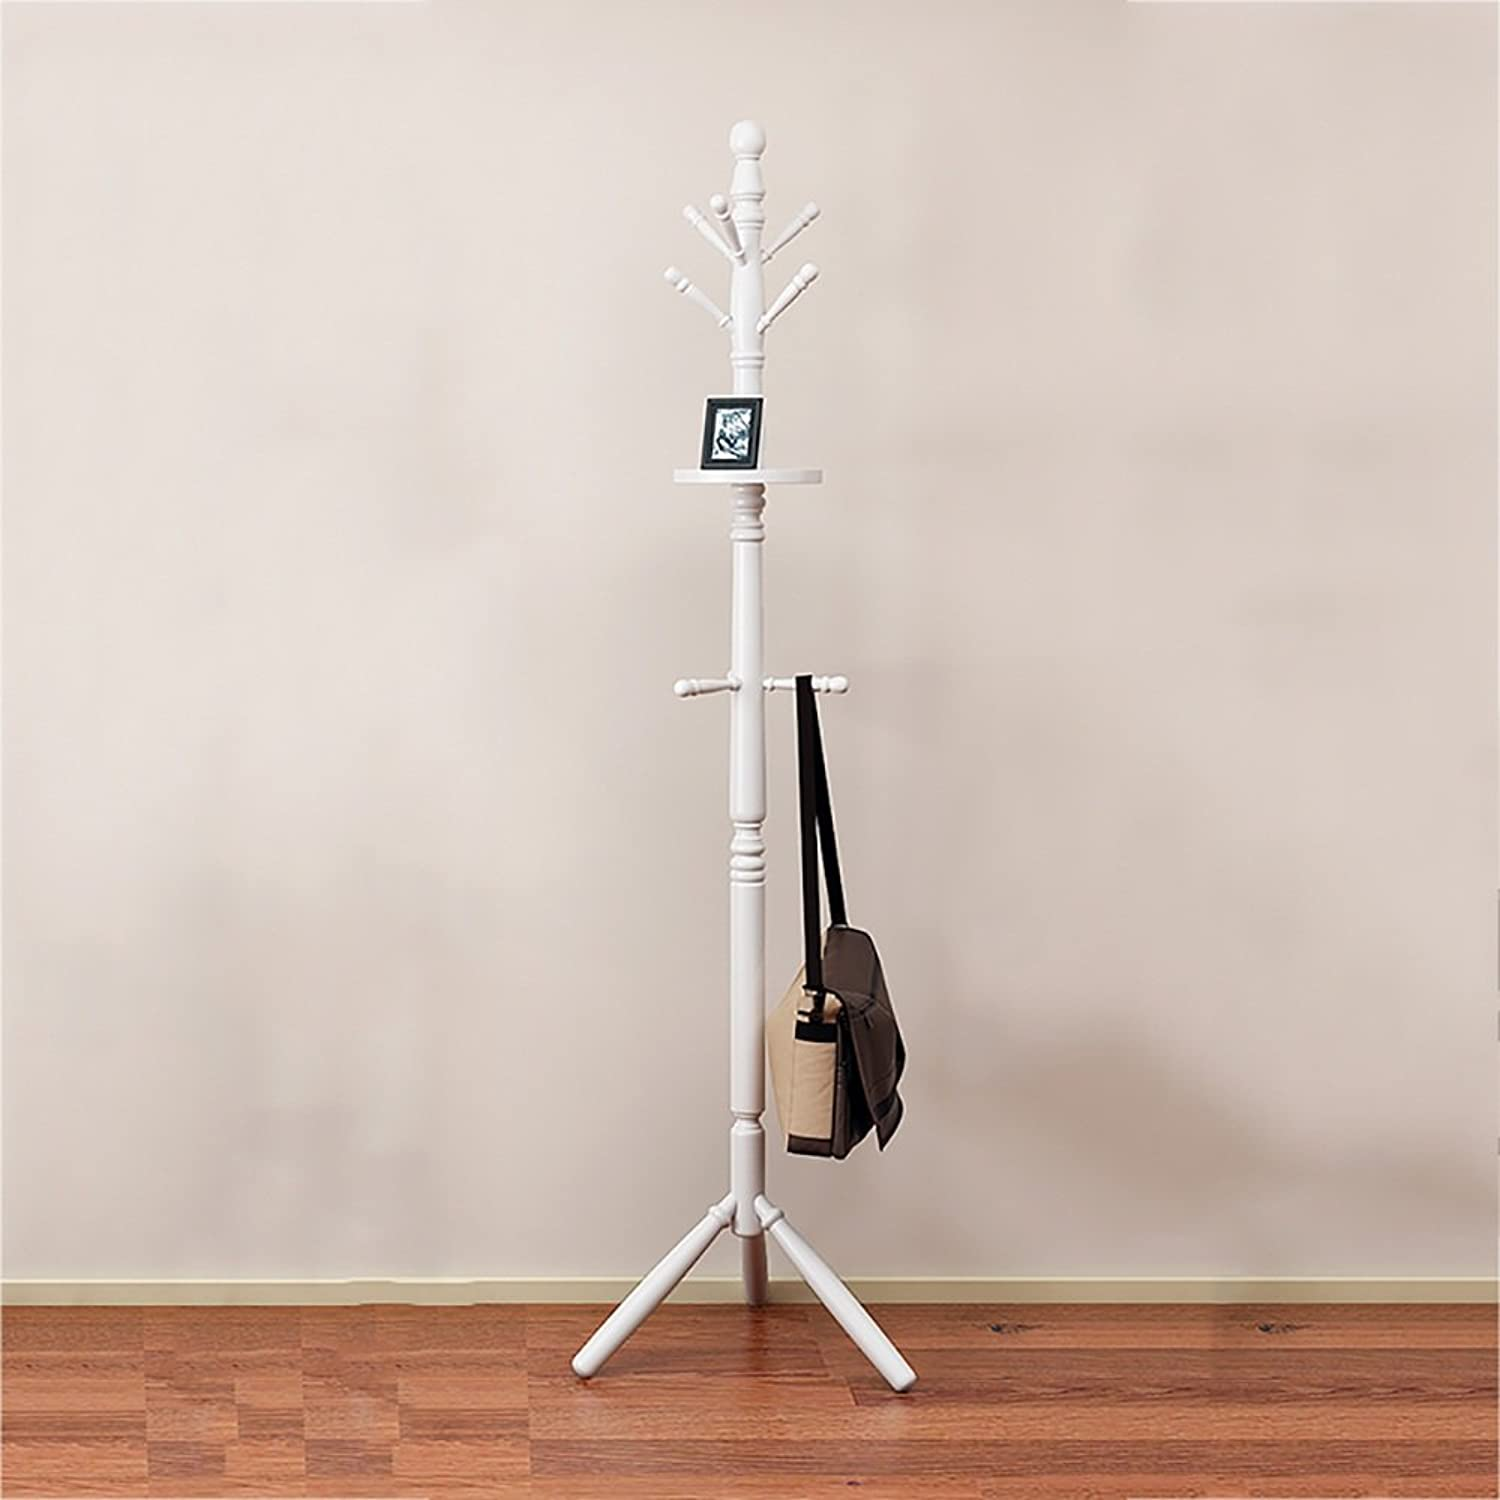 XRXY Solid Wood Floorstanding Coat Rack Bedroom Modern Hanger Creative Clothes Storage Rack (3 colors Optional) (color   White)